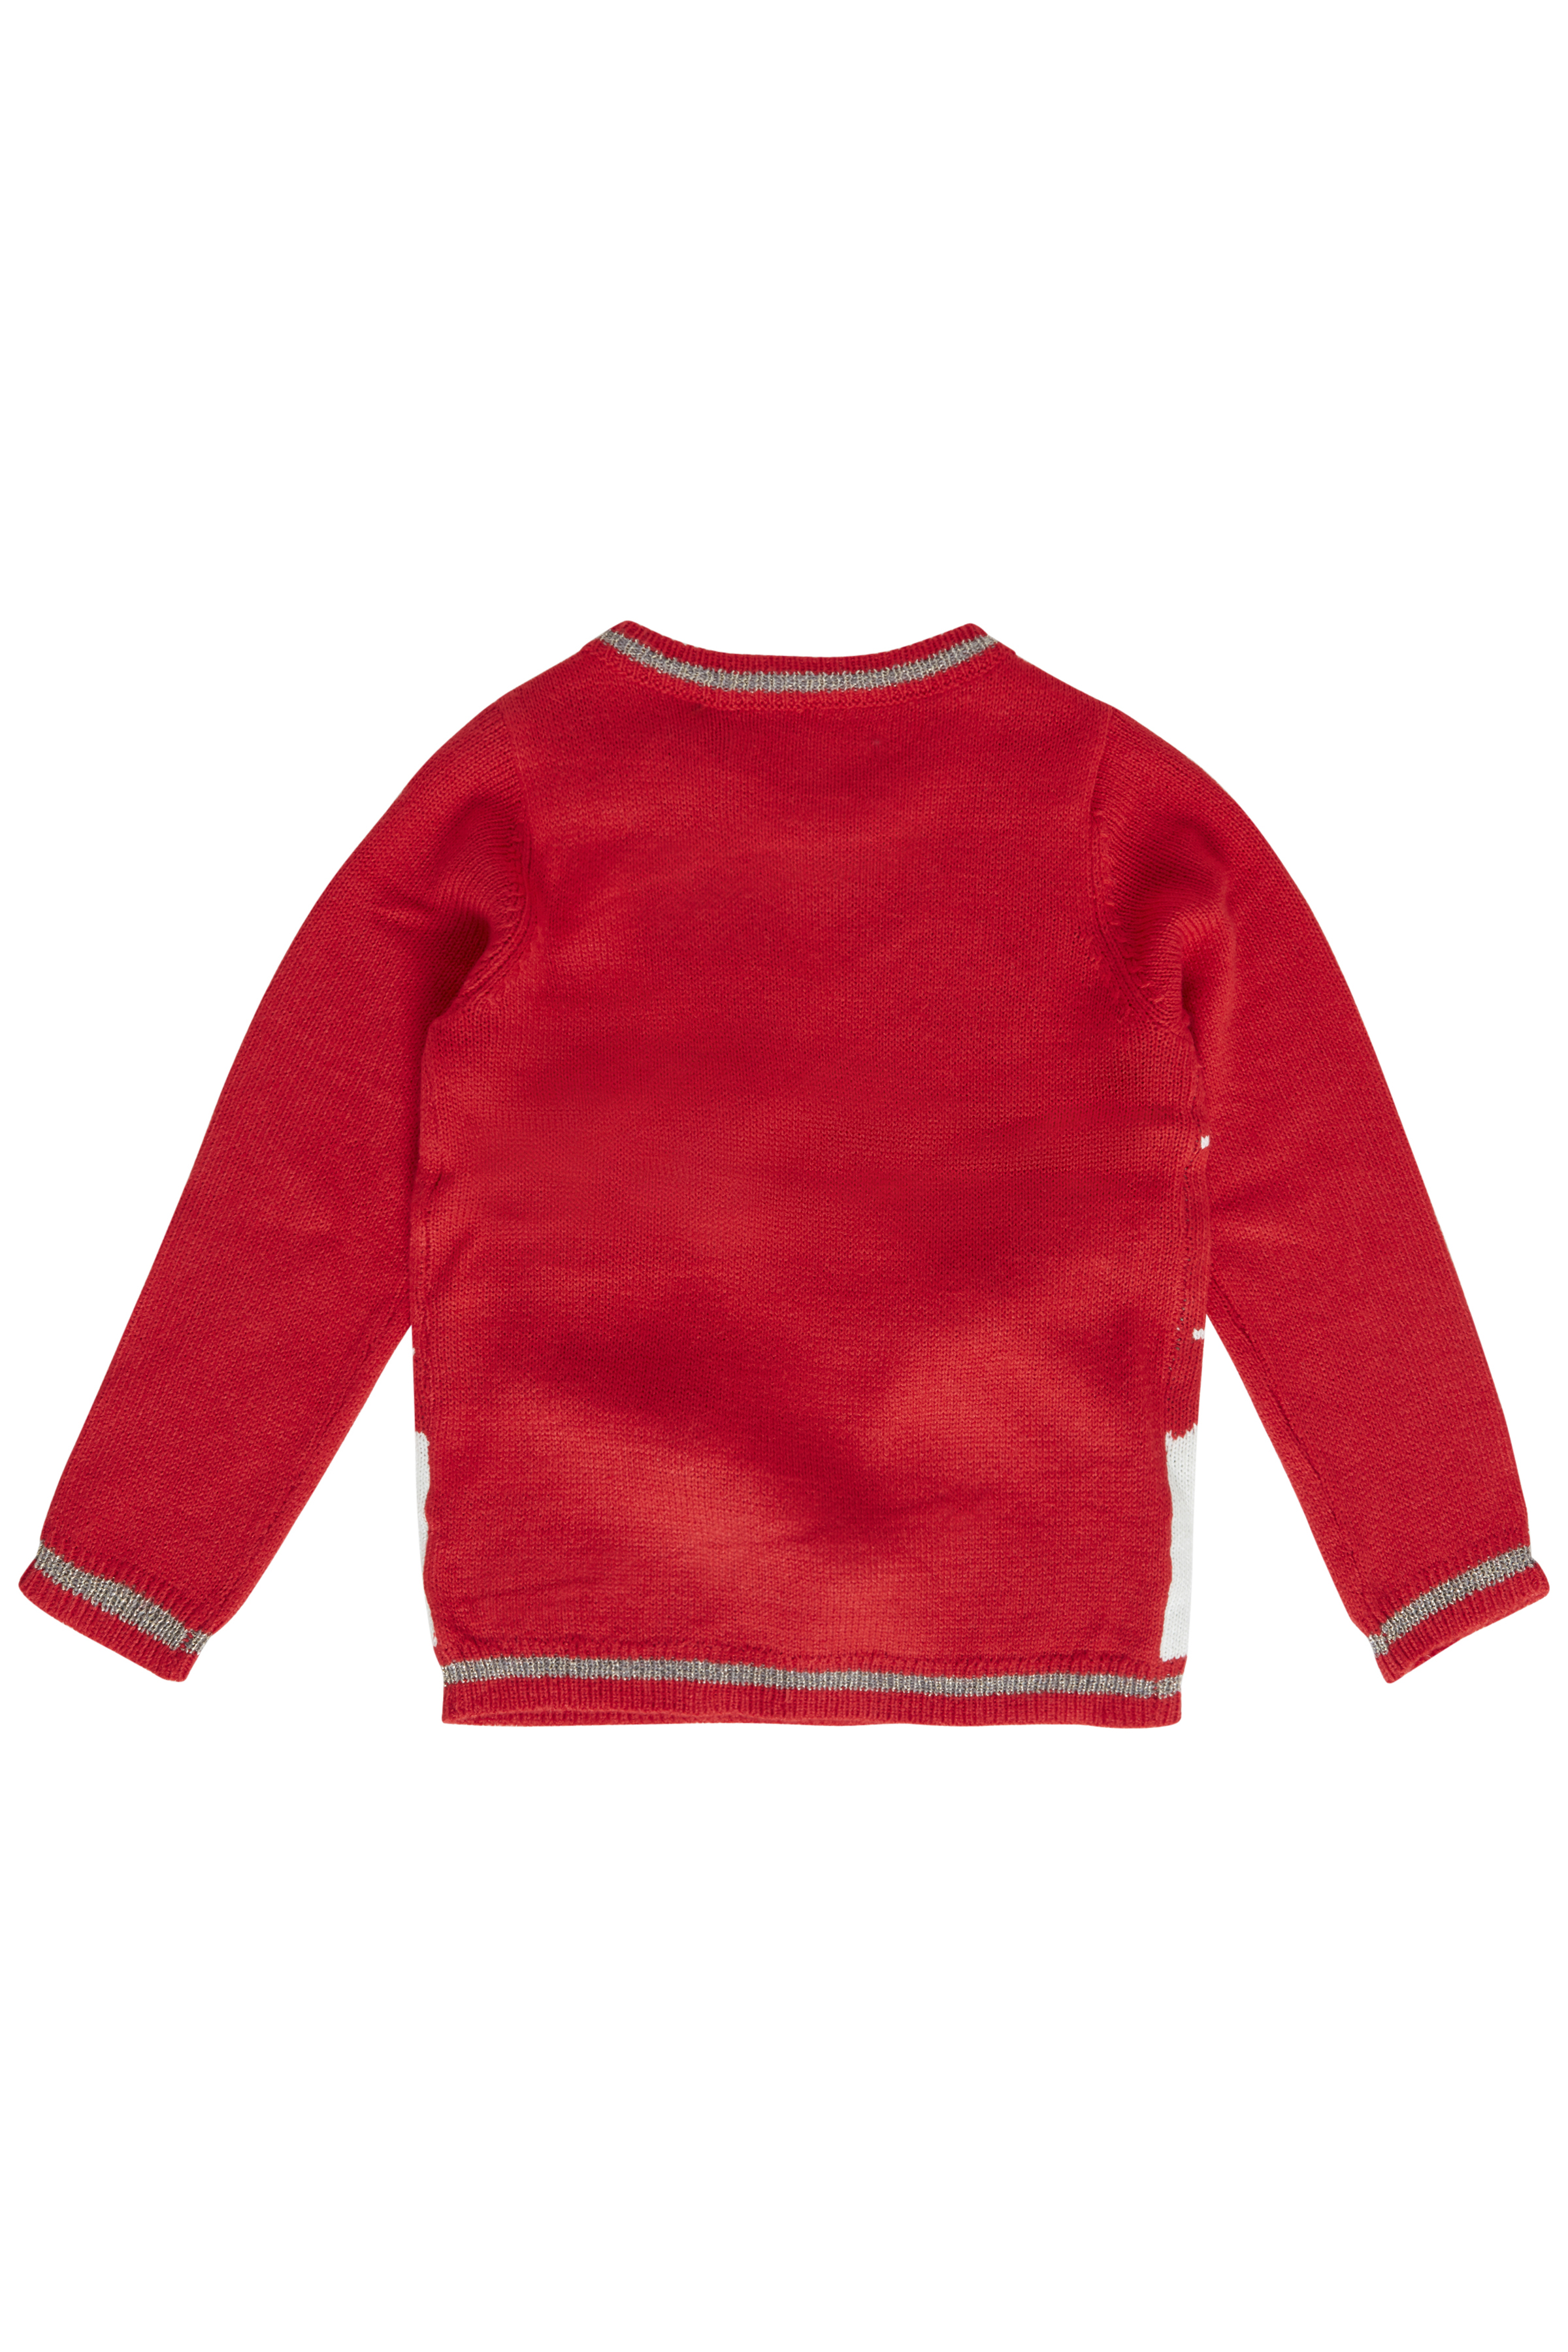 Chinese Red combi 3 Strikpullover fra b.young – Køb Chinese Red combi 3 Strikpullover fra str. 92-134/140 her